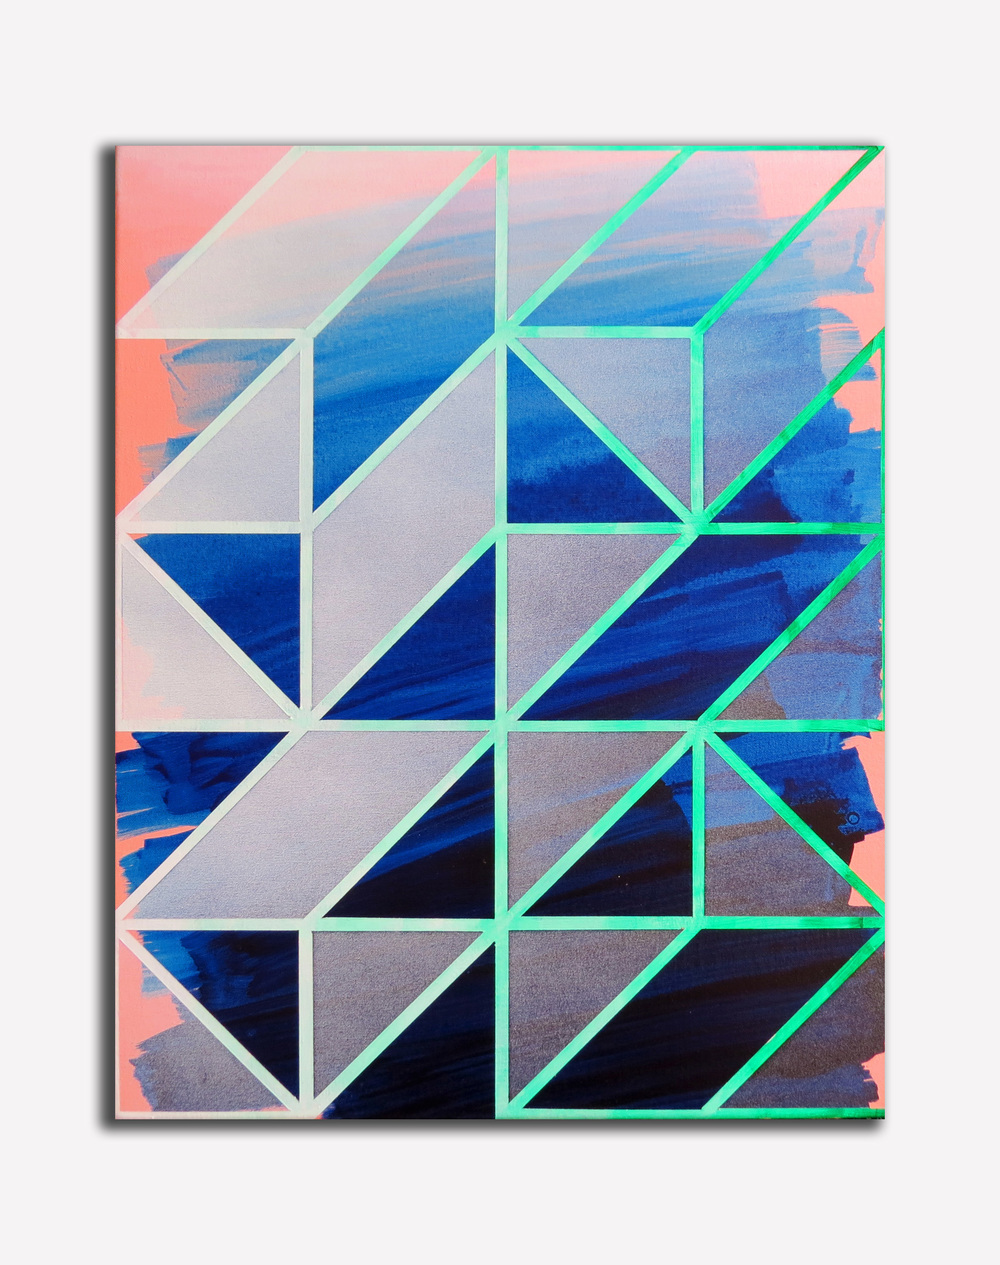 Oscillate #7, 40 x 50cm, Acrylic on canvas 2016.jpg